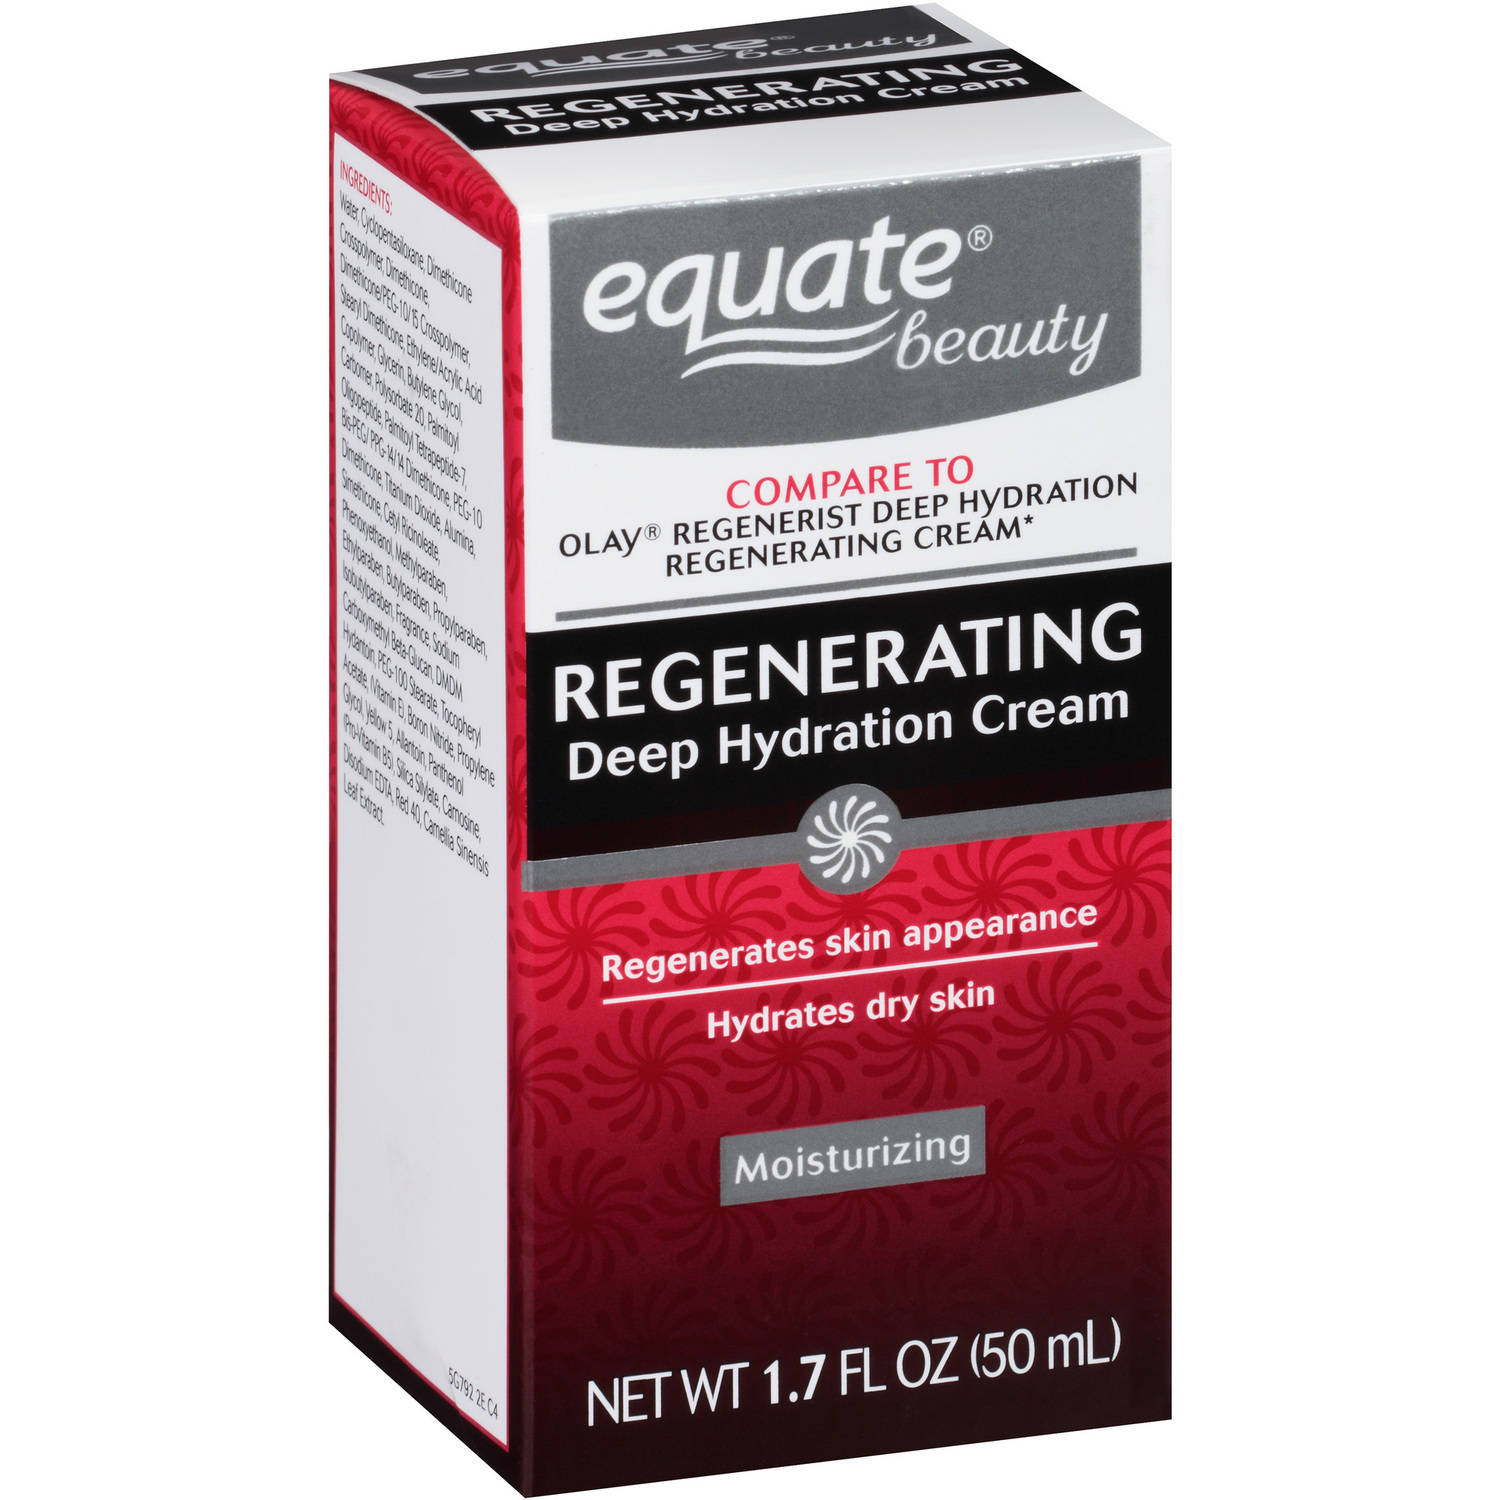 Equate Regenerating Deep Hydration Cream, 1.7 oz